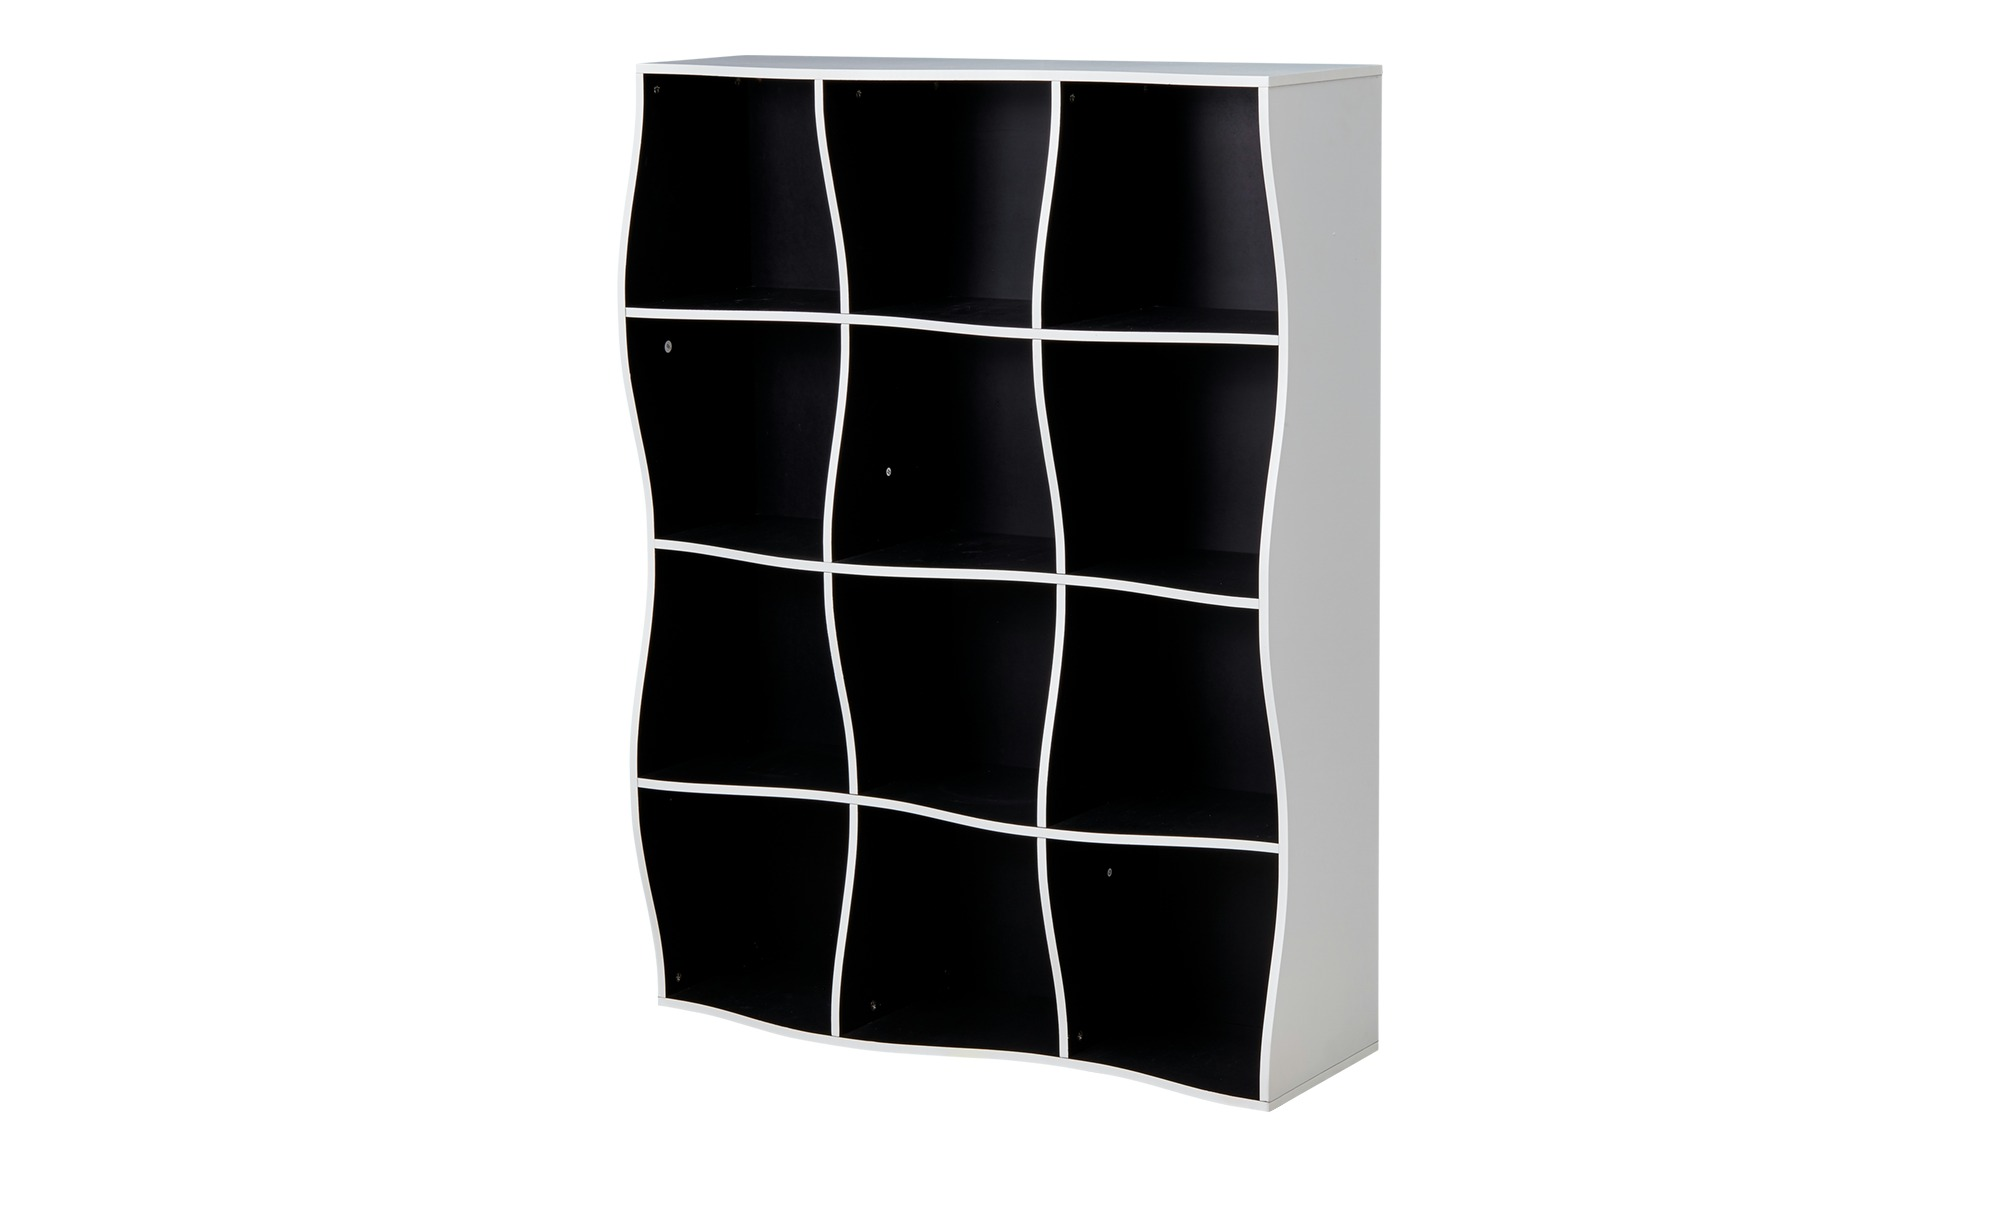 regal curve breite 90 cm h he 120 cm mehrfarbig online kaufen bei woonio. Black Bedroom Furniture Sets. Home Design Ideas